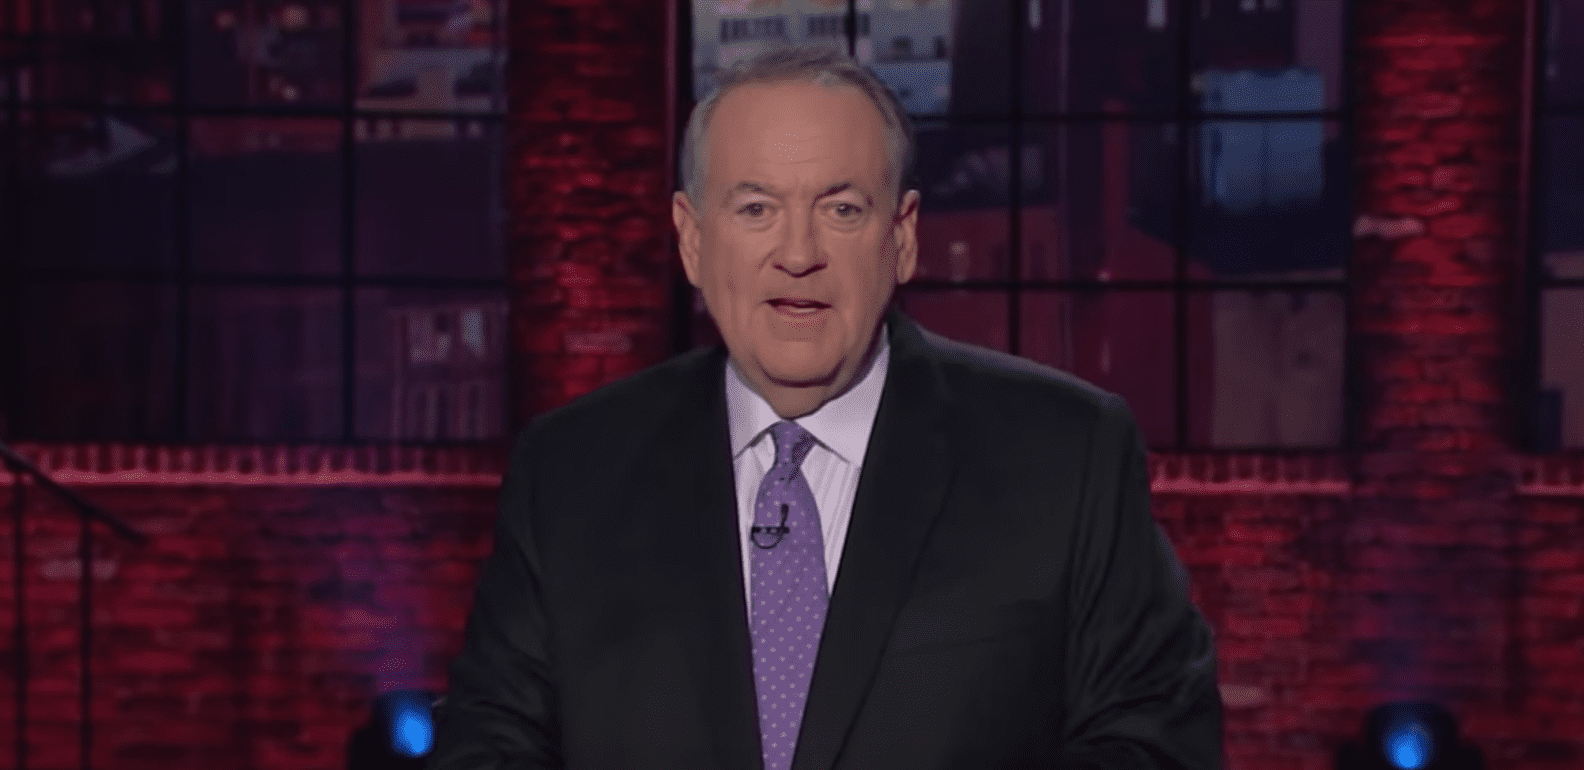 VIDEO: Huckabee rips AOC's 'absurd' criticism of VP Mike Pence